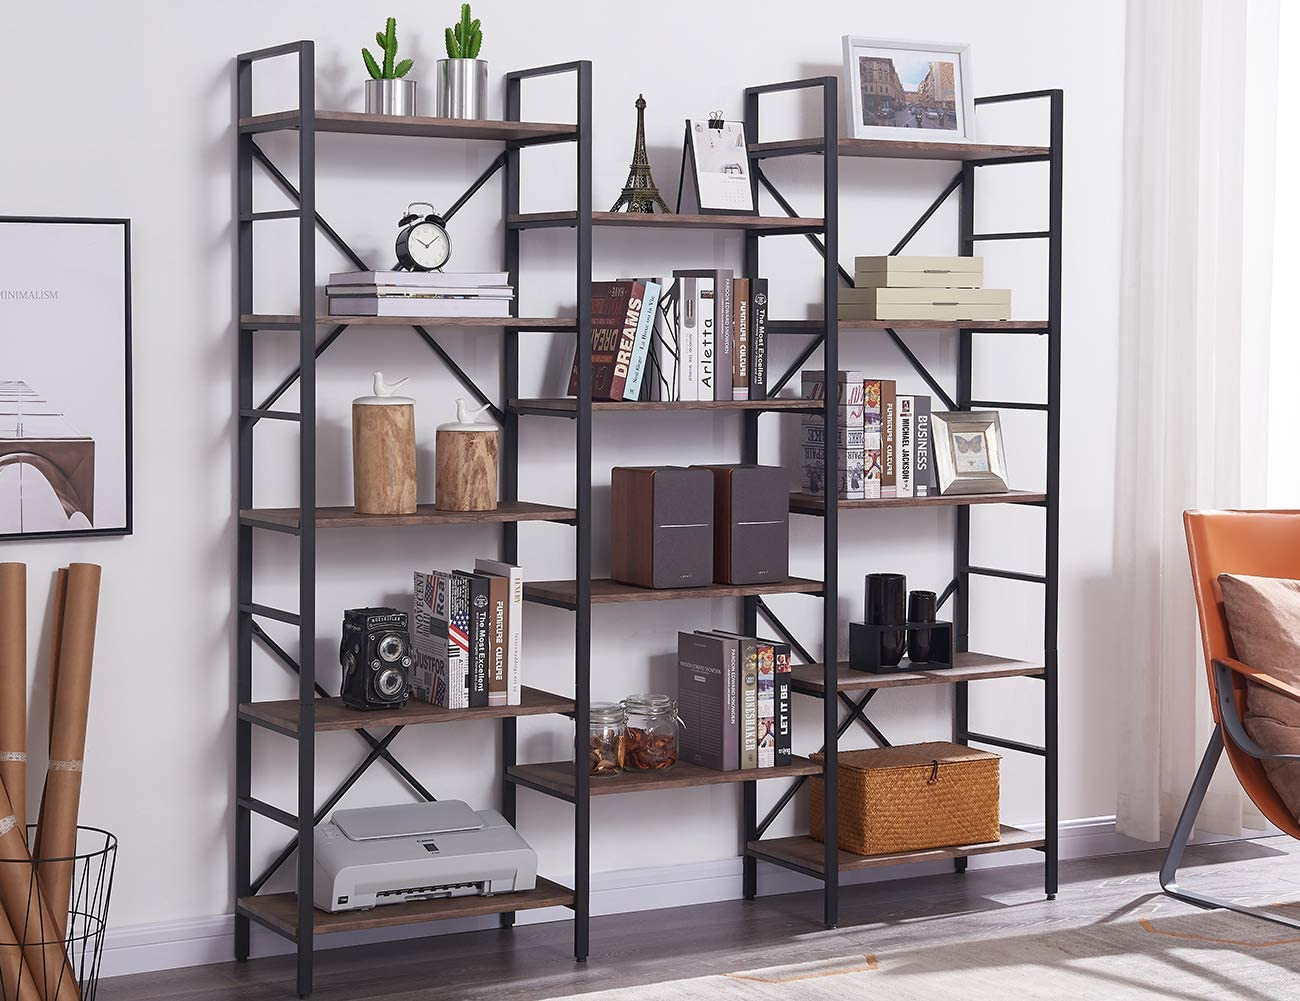 SUPERJARE Triple Wide 5-Tier Bookshelf, Rustic Industrial Style Book Shelf, Wood and Metal Bookcase Furniture for Home & Office - Vintage Brown